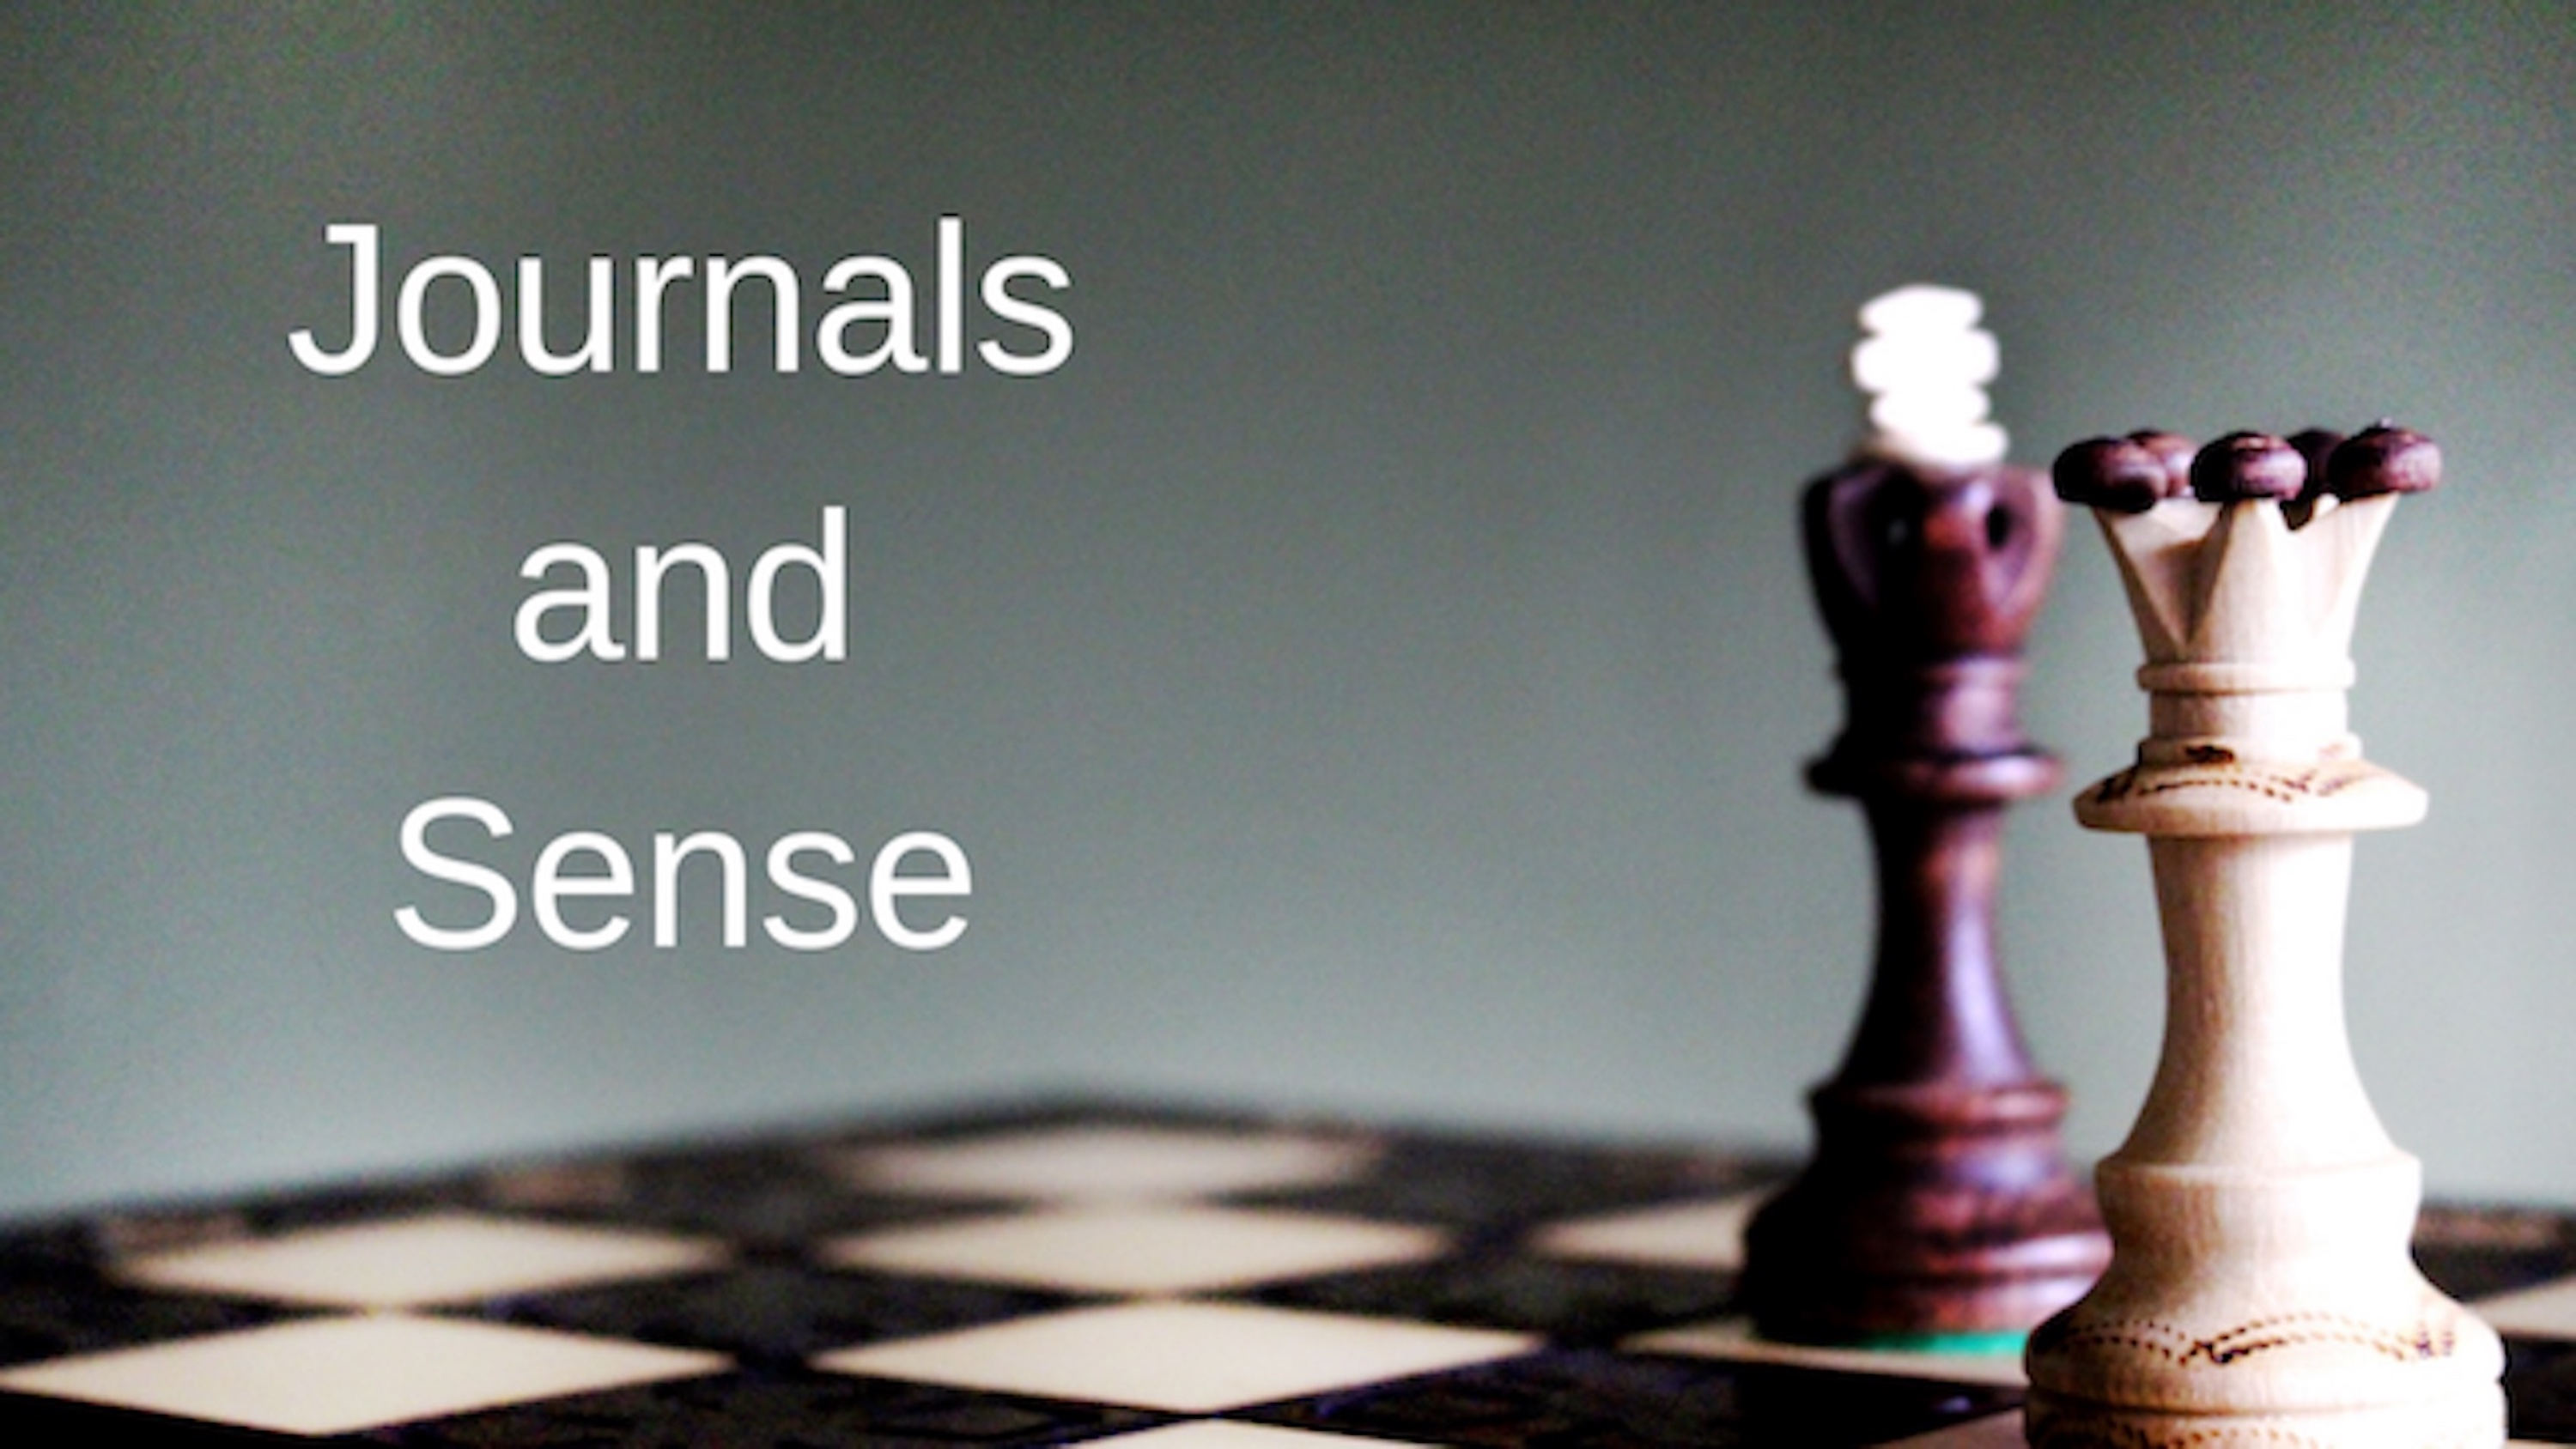 Journals and Sense - First 4 steps in starting a small business